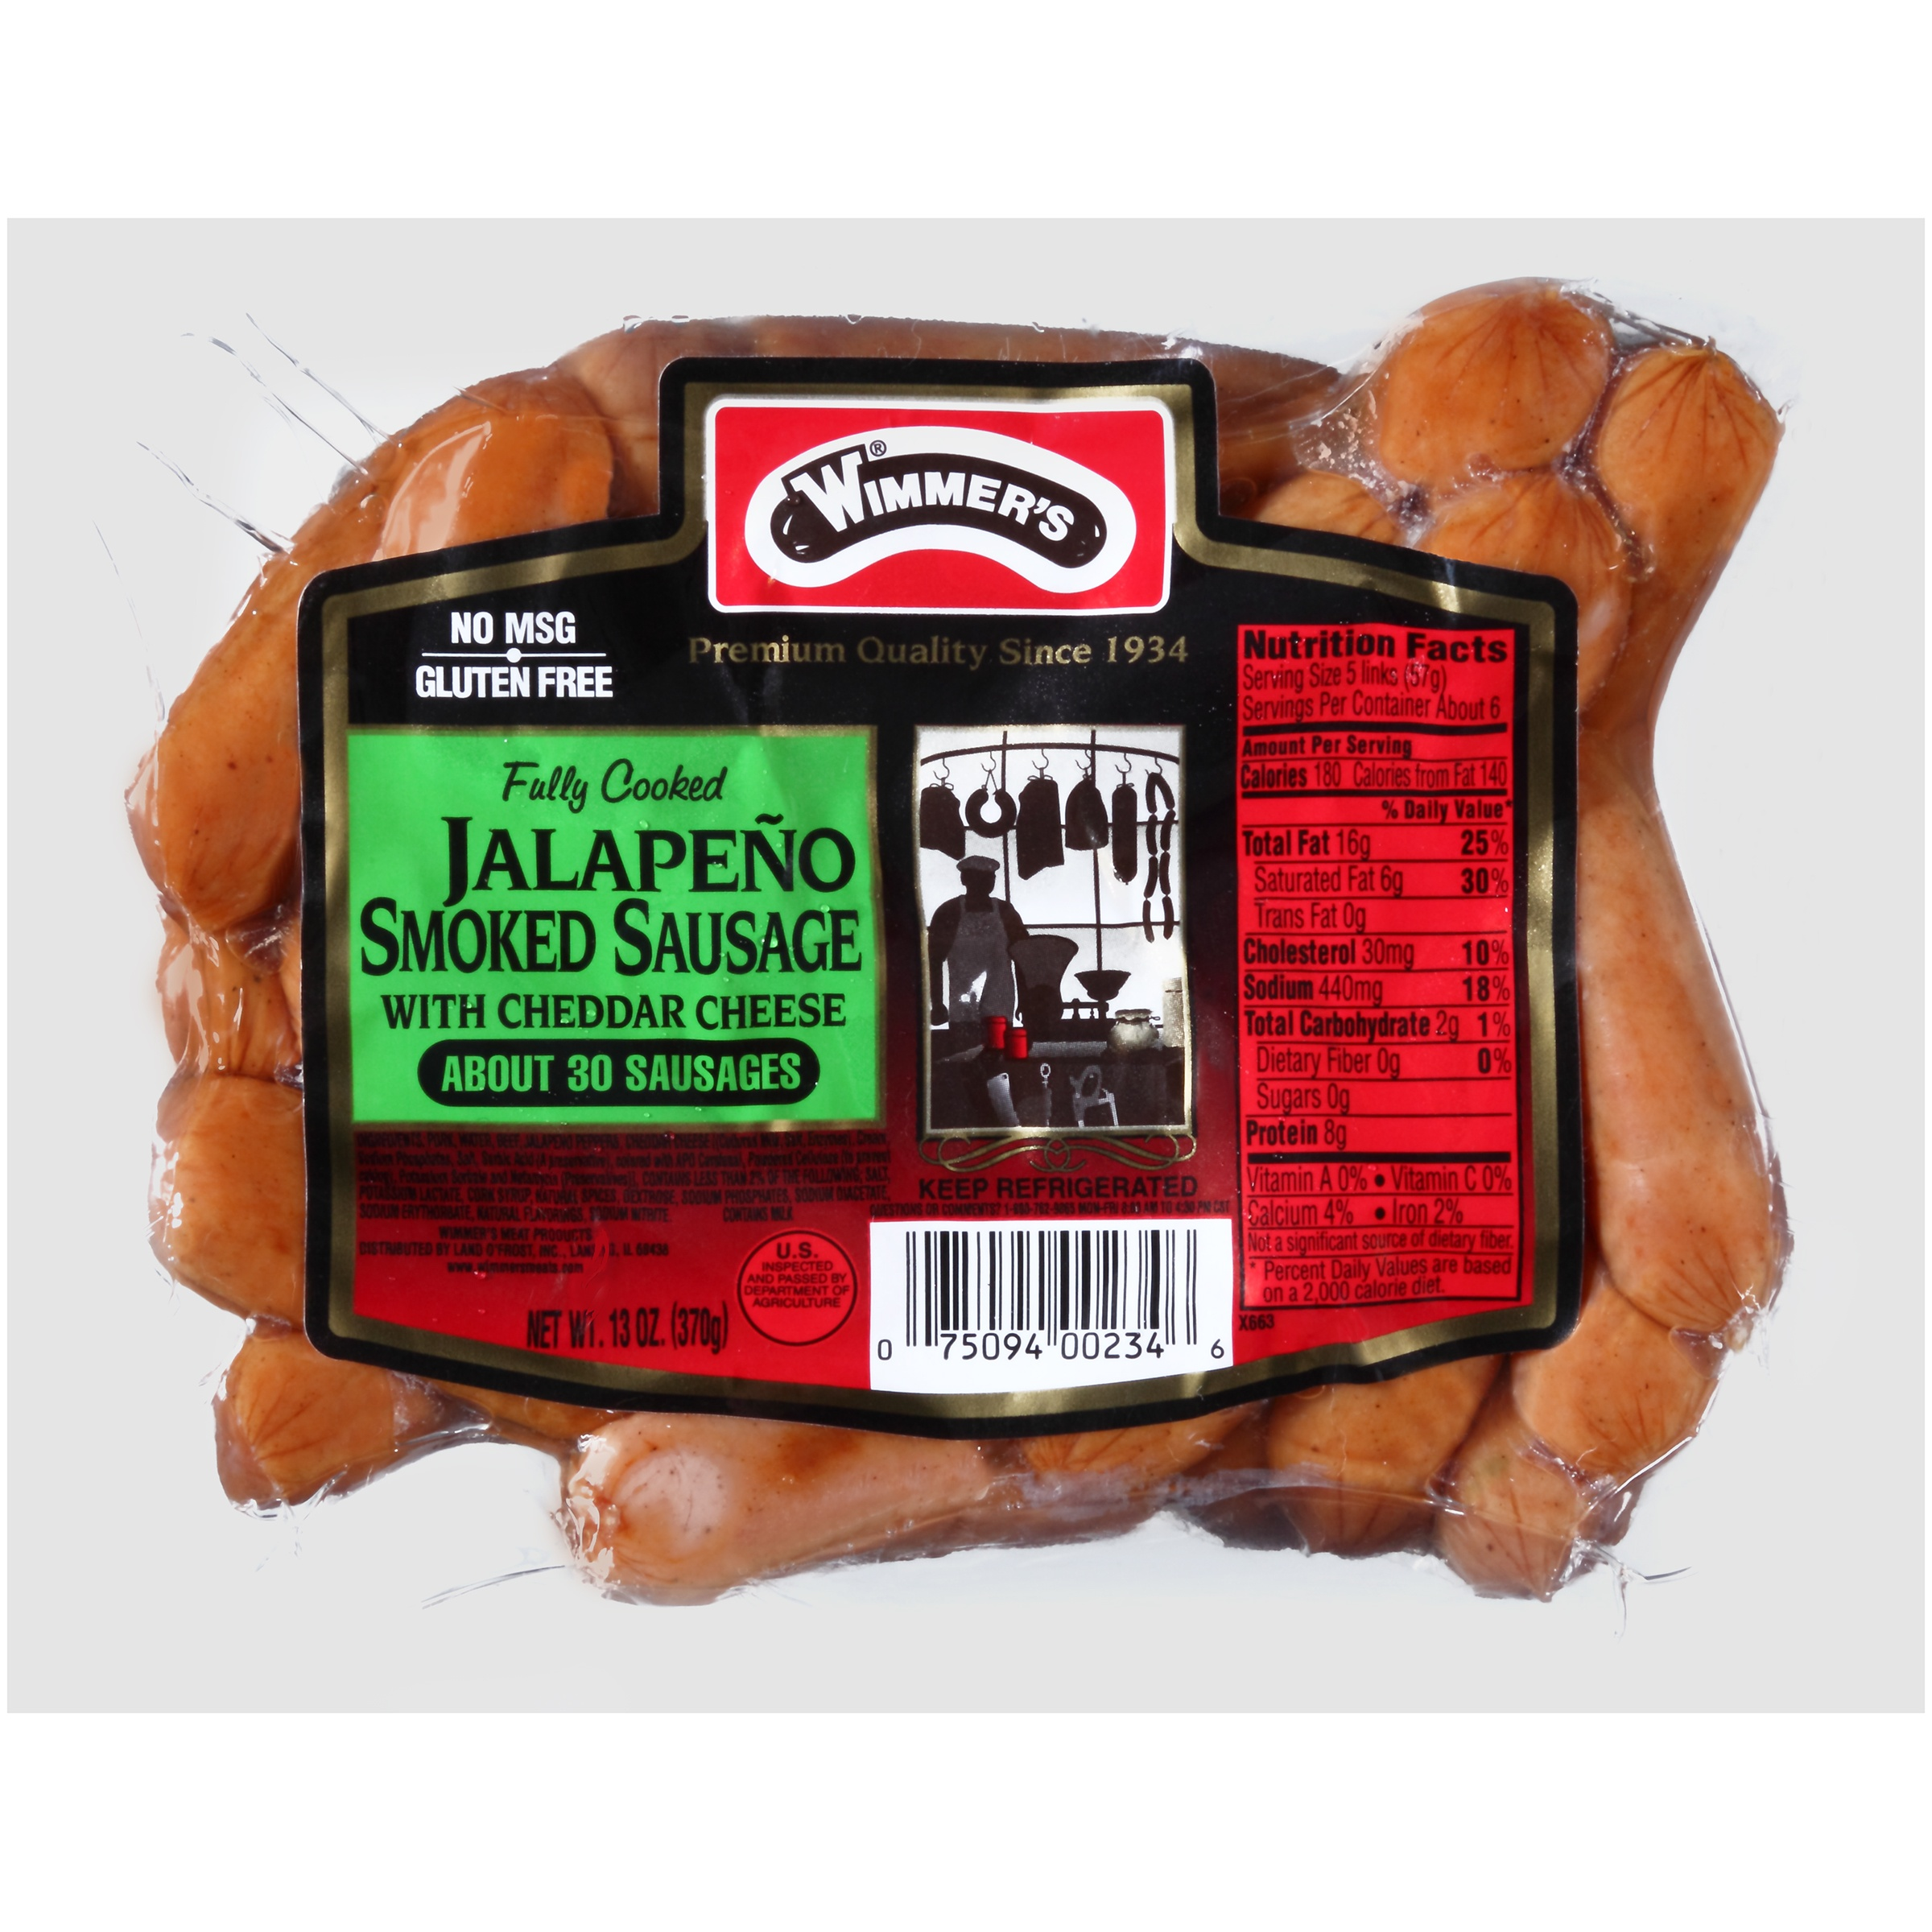 Wimmer's® Jalapeño Smoked Sausage with Cheddar Cheese 13 oz. Pack